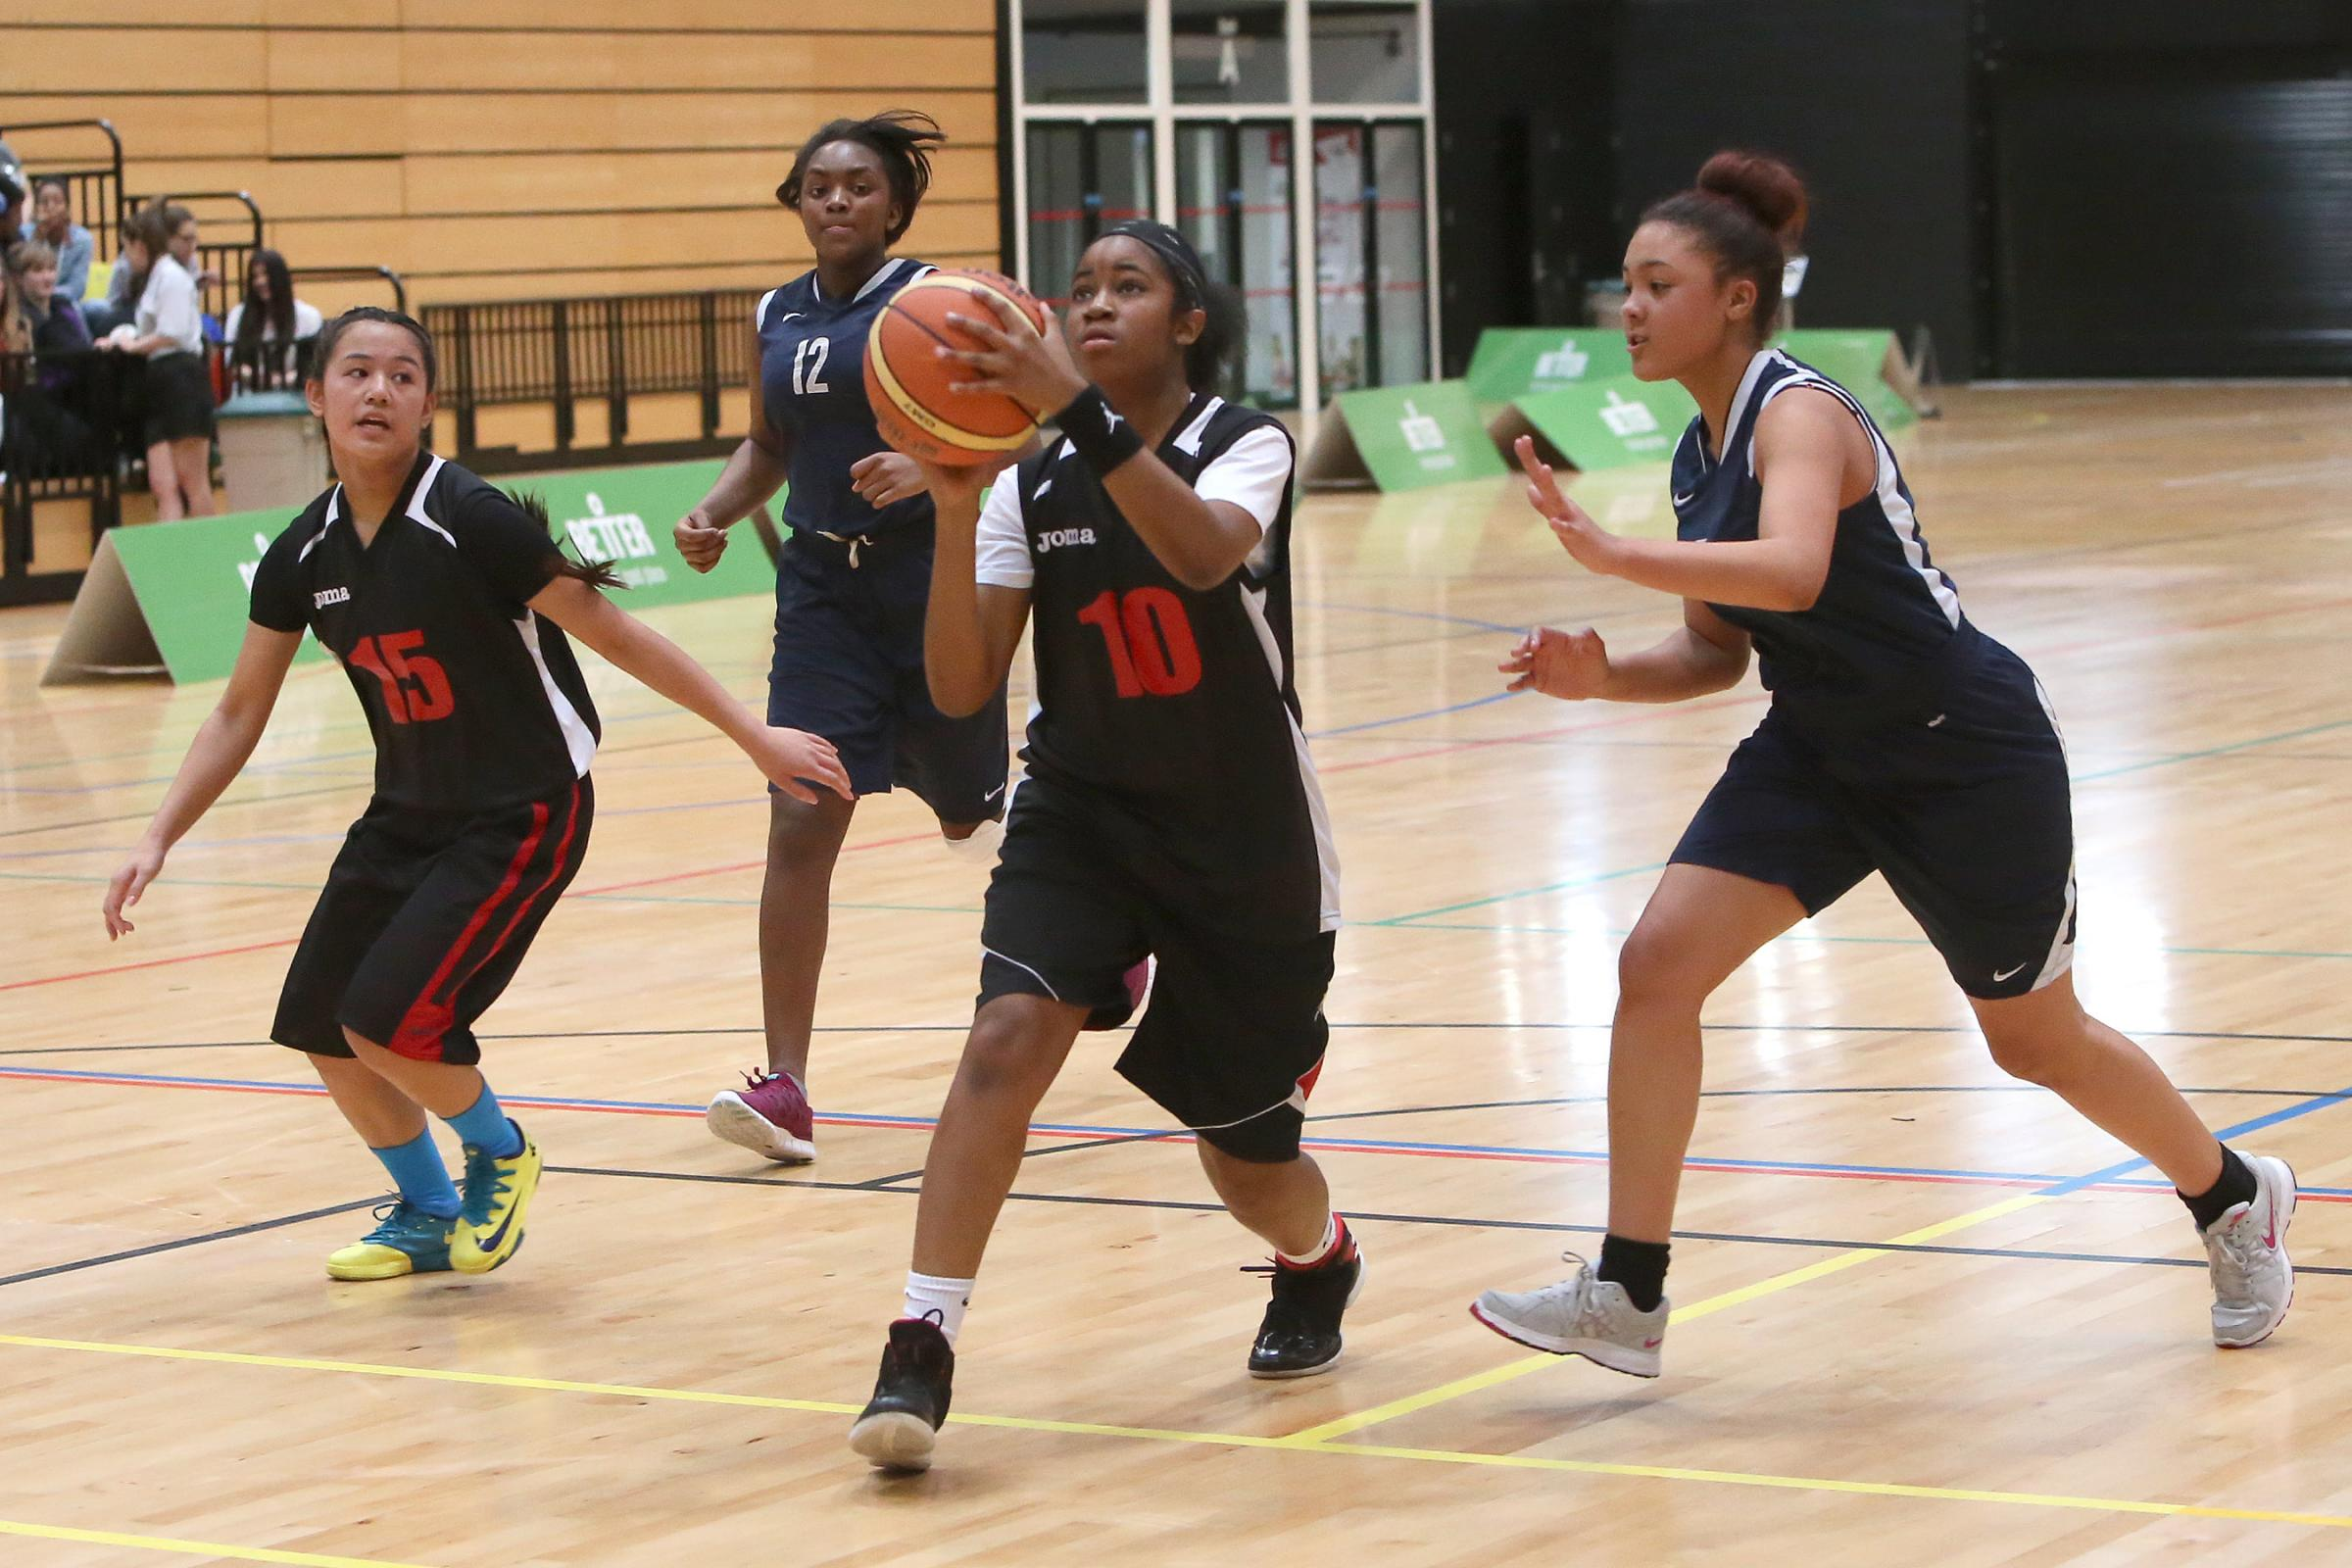 BASKETBALL: Youngsters go head to head for borough crown